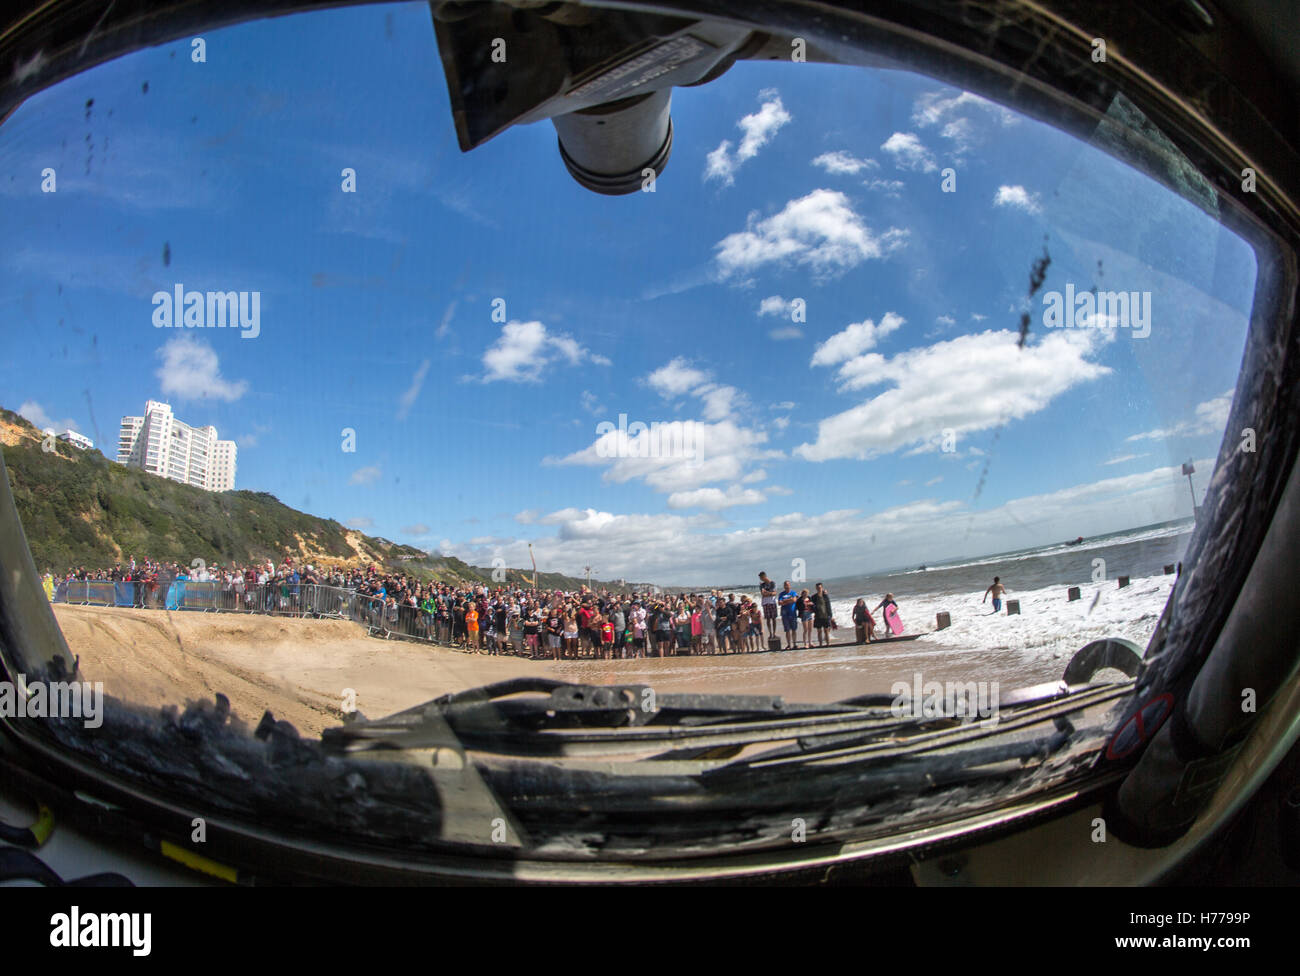 On the beach at Bournemouth Air Festival 2016 - Stock Image